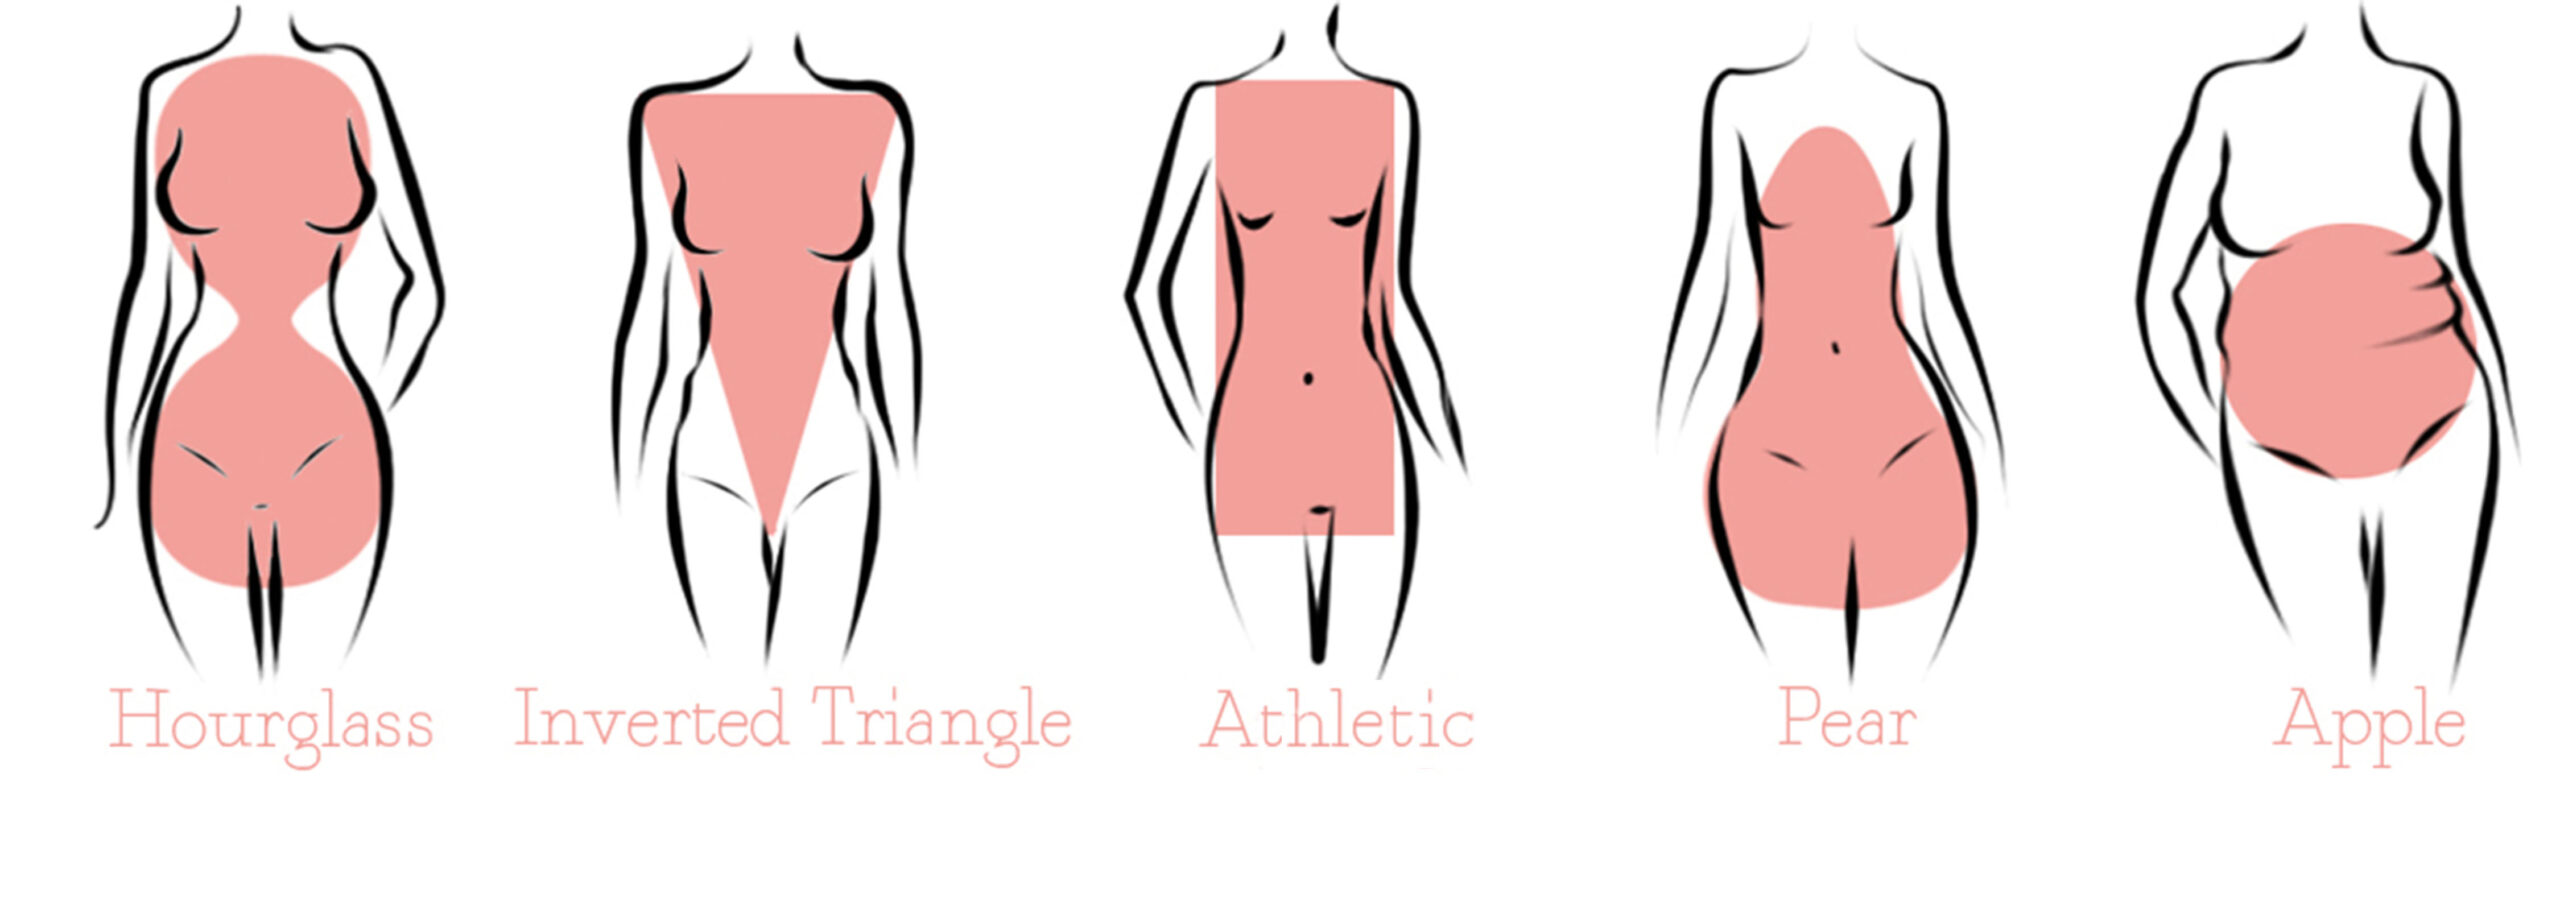 5 Tips For Finding The Right Lingerie For Your Body Type - 2021 Guide 2